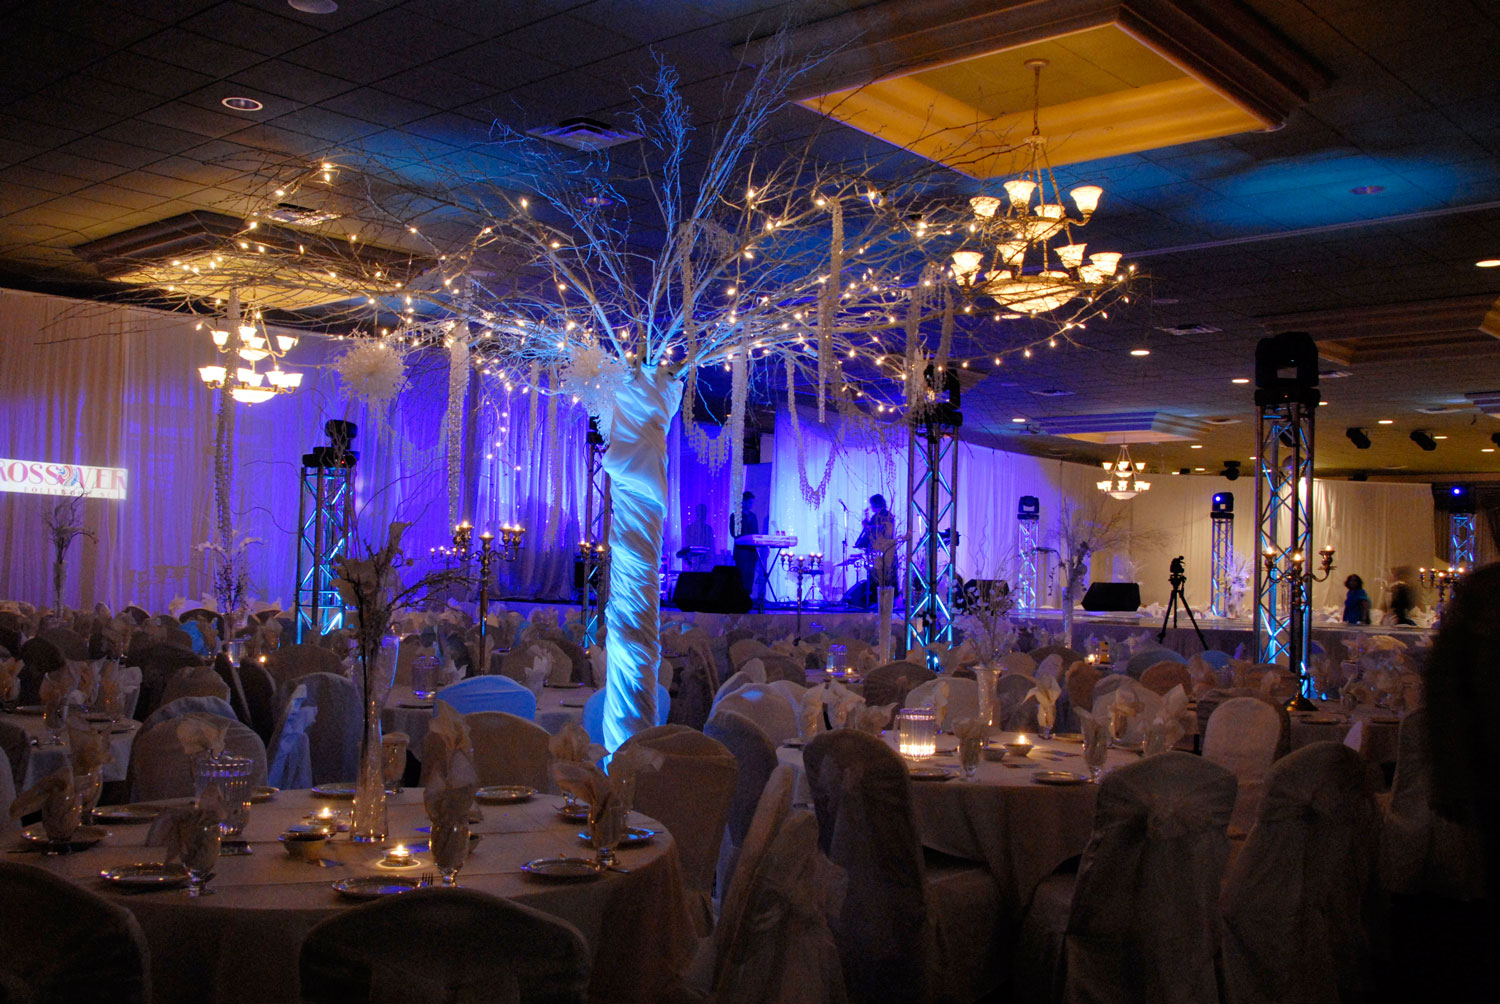 Fashion Show - Catwalk - corporate event - lighting - draping - decor - decorations